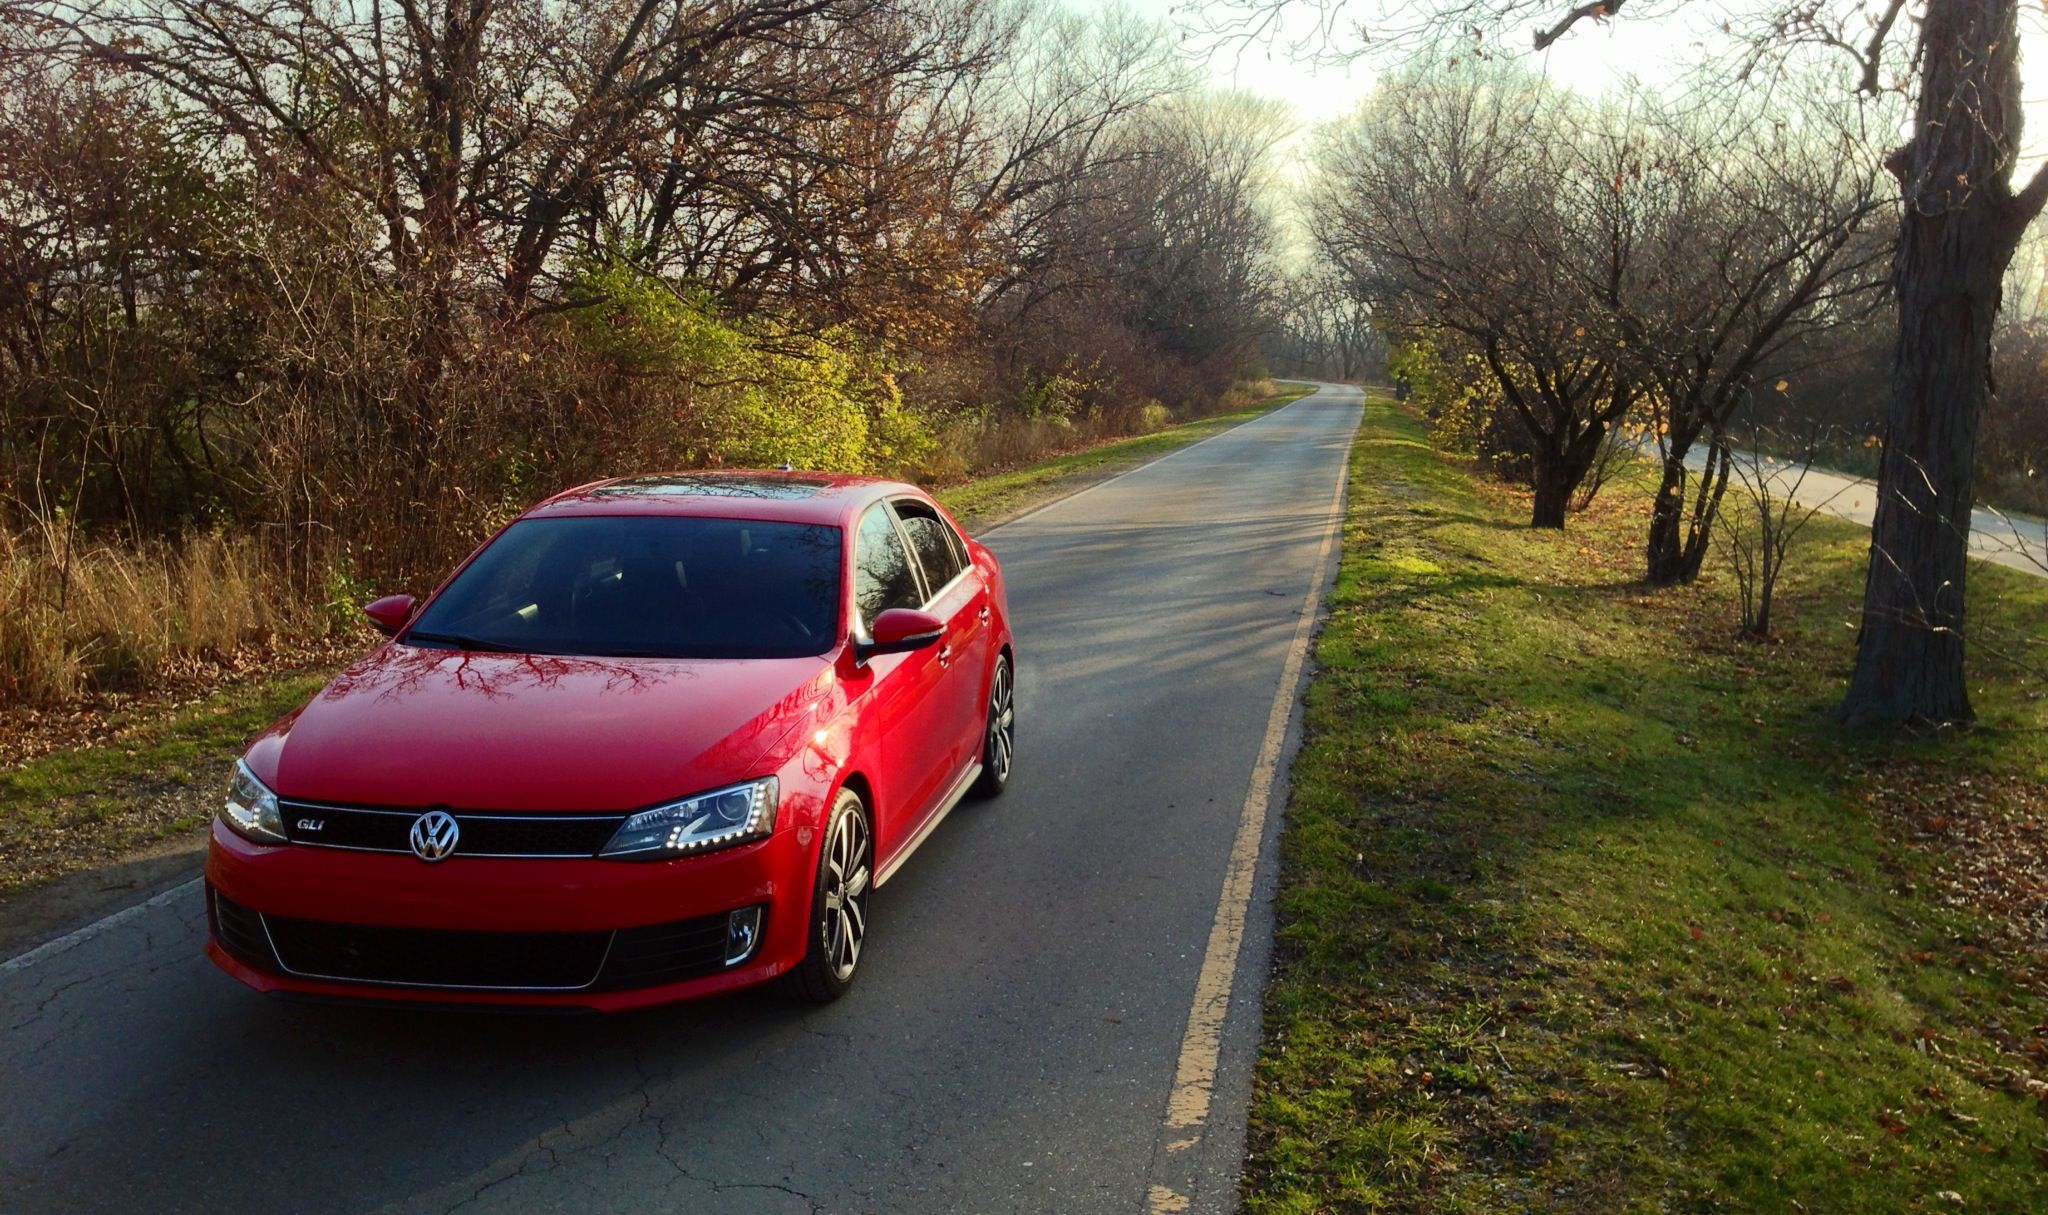 30ca0d8bdd02e5233cb779dd0b277a11 Interesting Info About 2016 Vw Gli